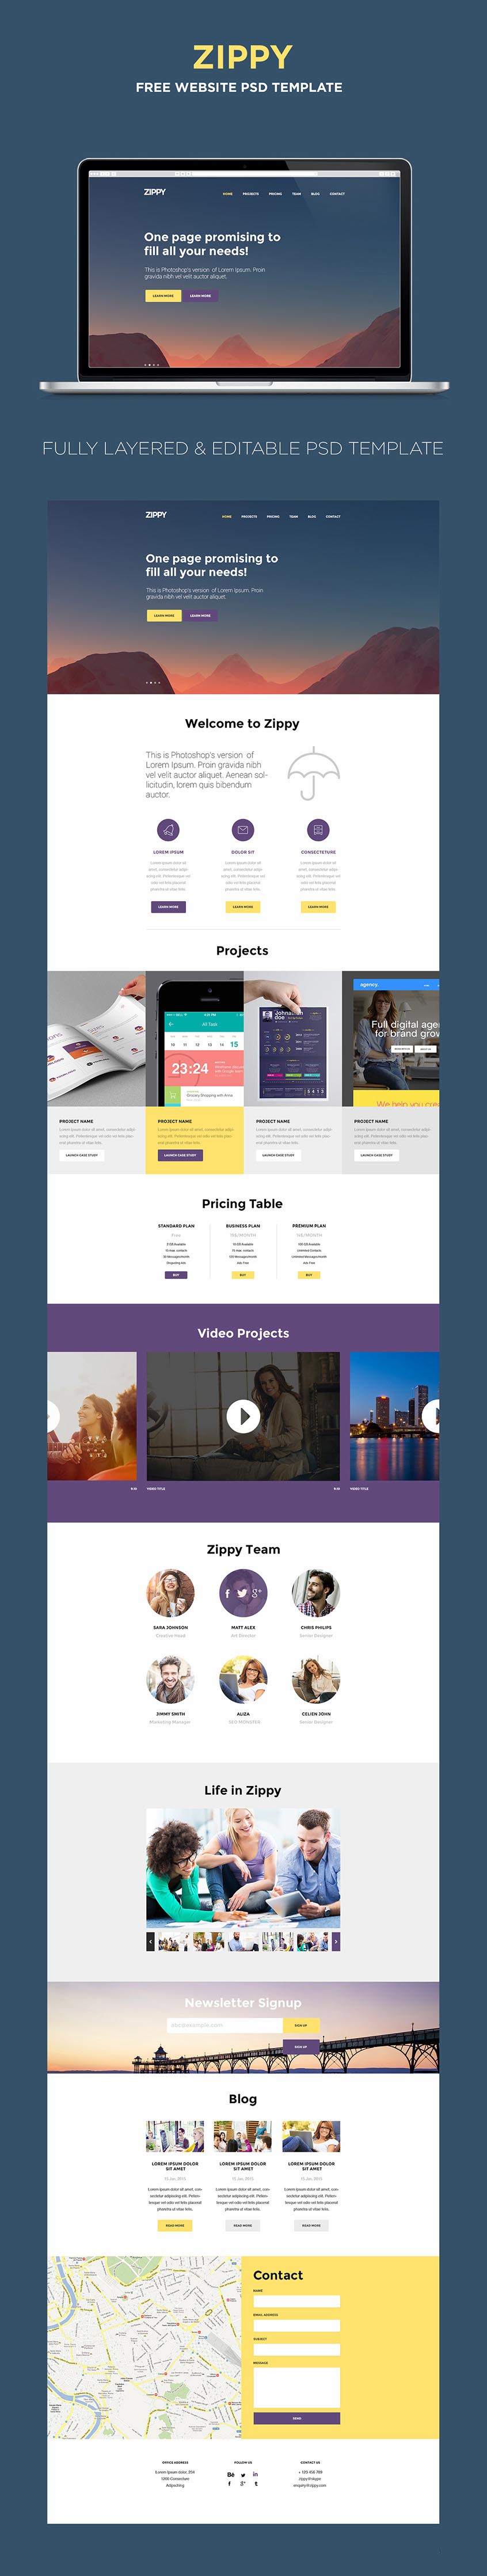 Free One Page Website Template | PSD Templates | Pinterest ...